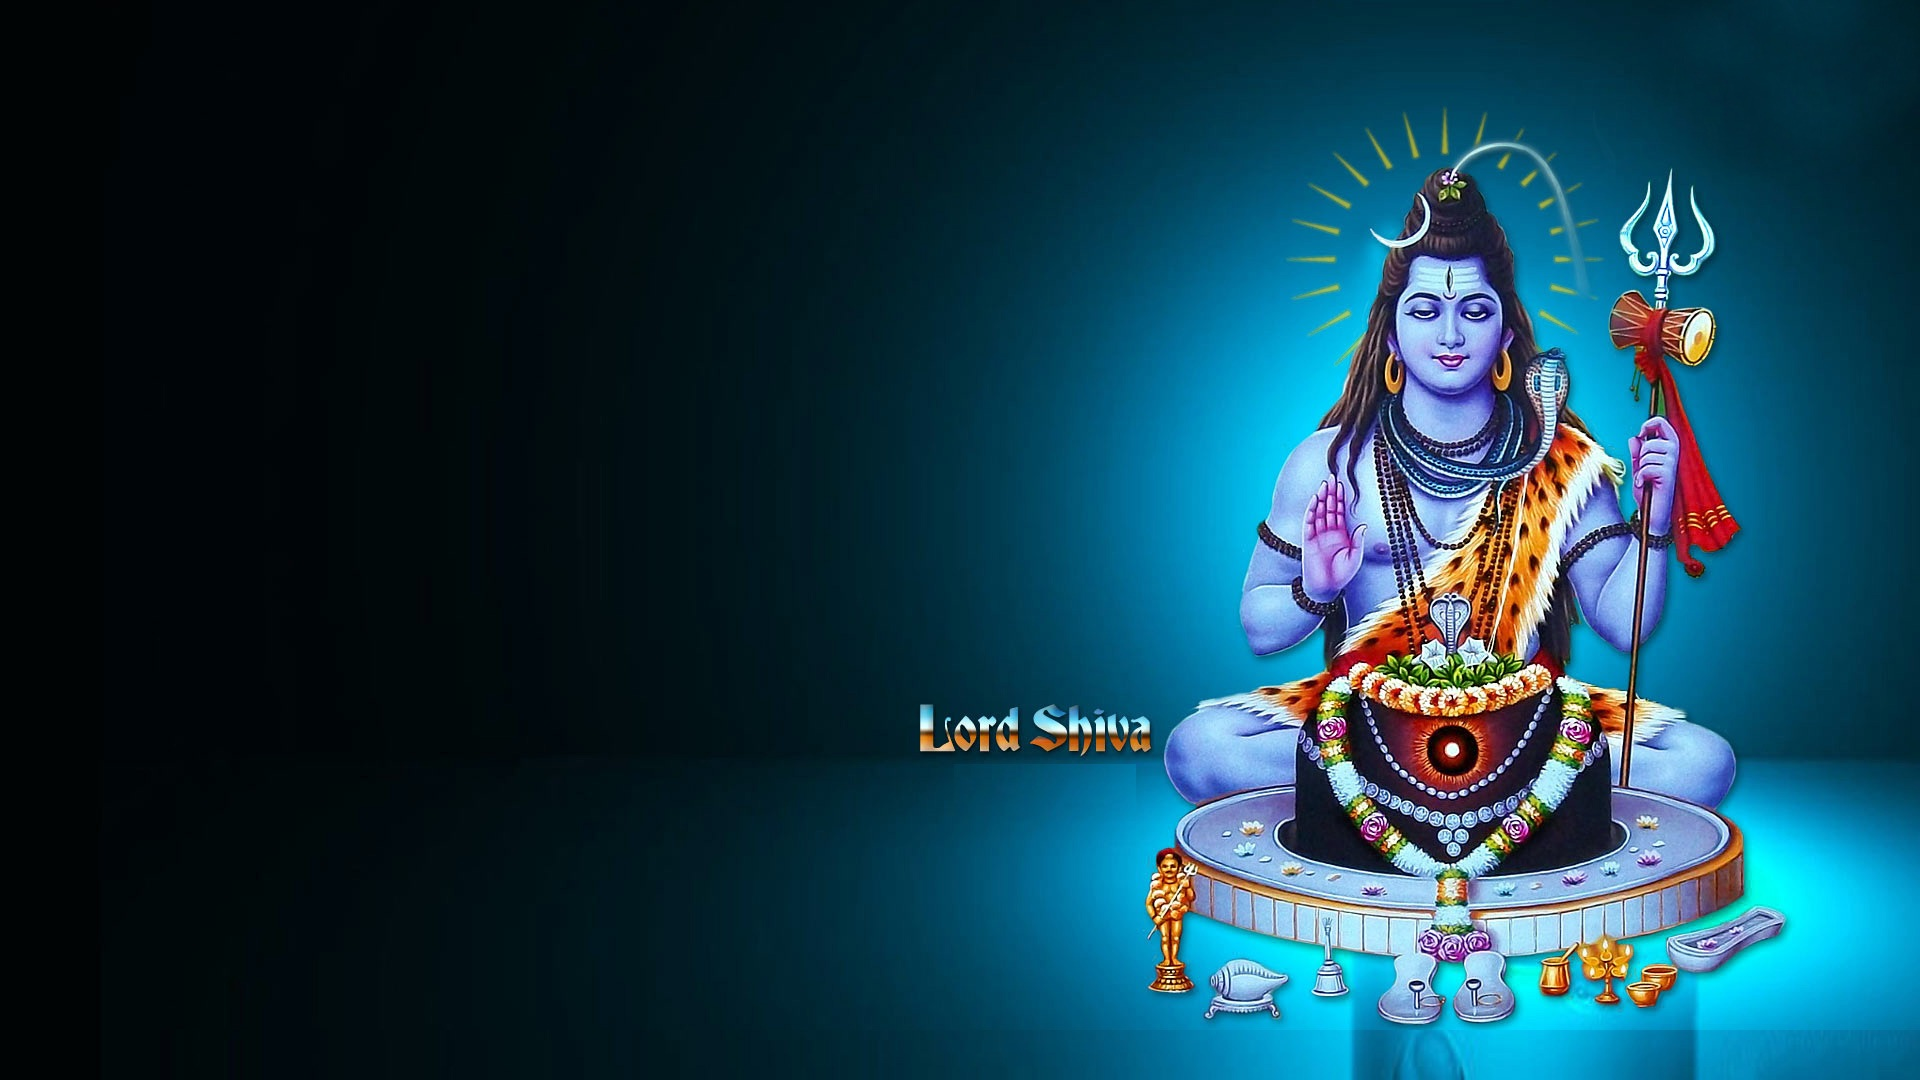 maha shivratri Maha shivaratri, also known as the great night of shiva, is a hindu festival which is celebrated annually on the 13th or 14th night of the new moon in the hindu month of phalgun and during krishna paksha – which is between march and february on the gregorian calendar.